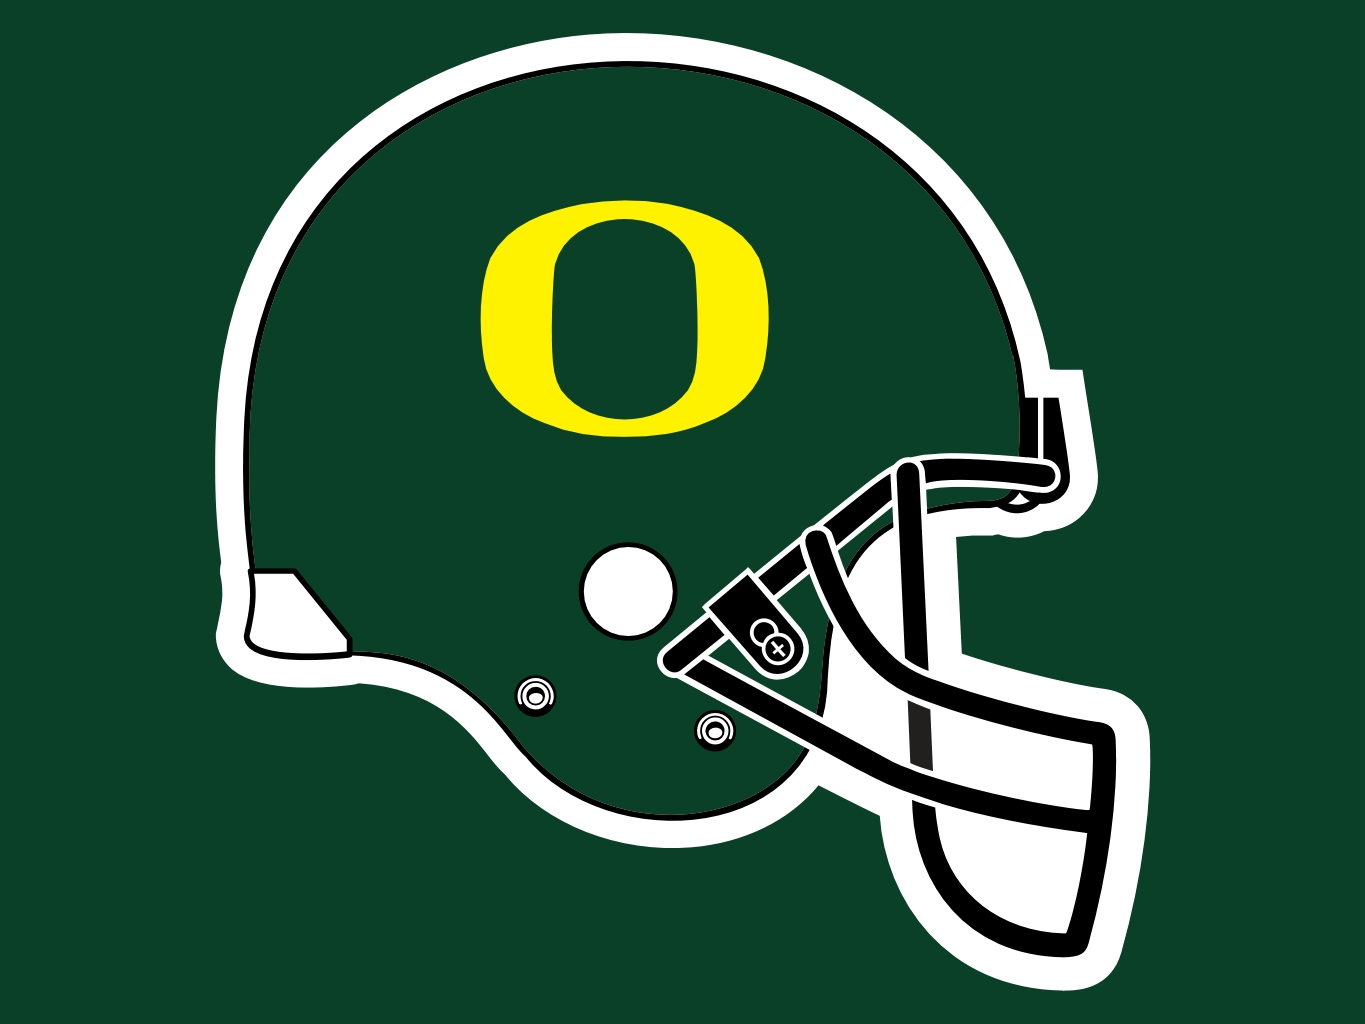 Oregon Ducks Helmet Wallpaper.